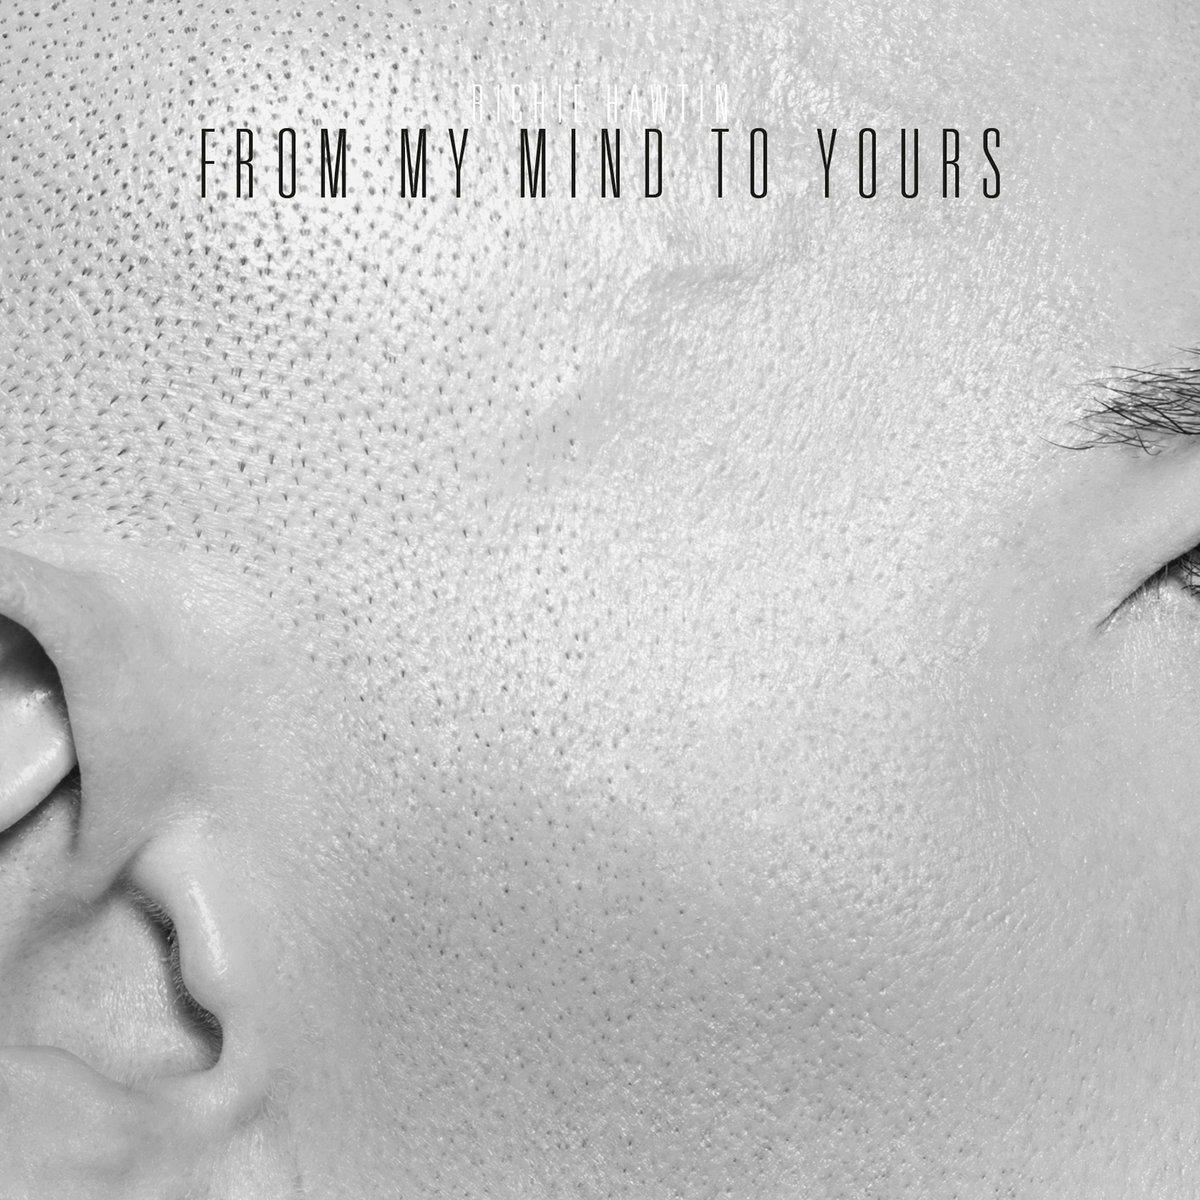 Stunning From My To By Richie Hawtin From My To Yours Records Yours Or Your S Grammar Yours Or Yours inspiration Yours Or Yours